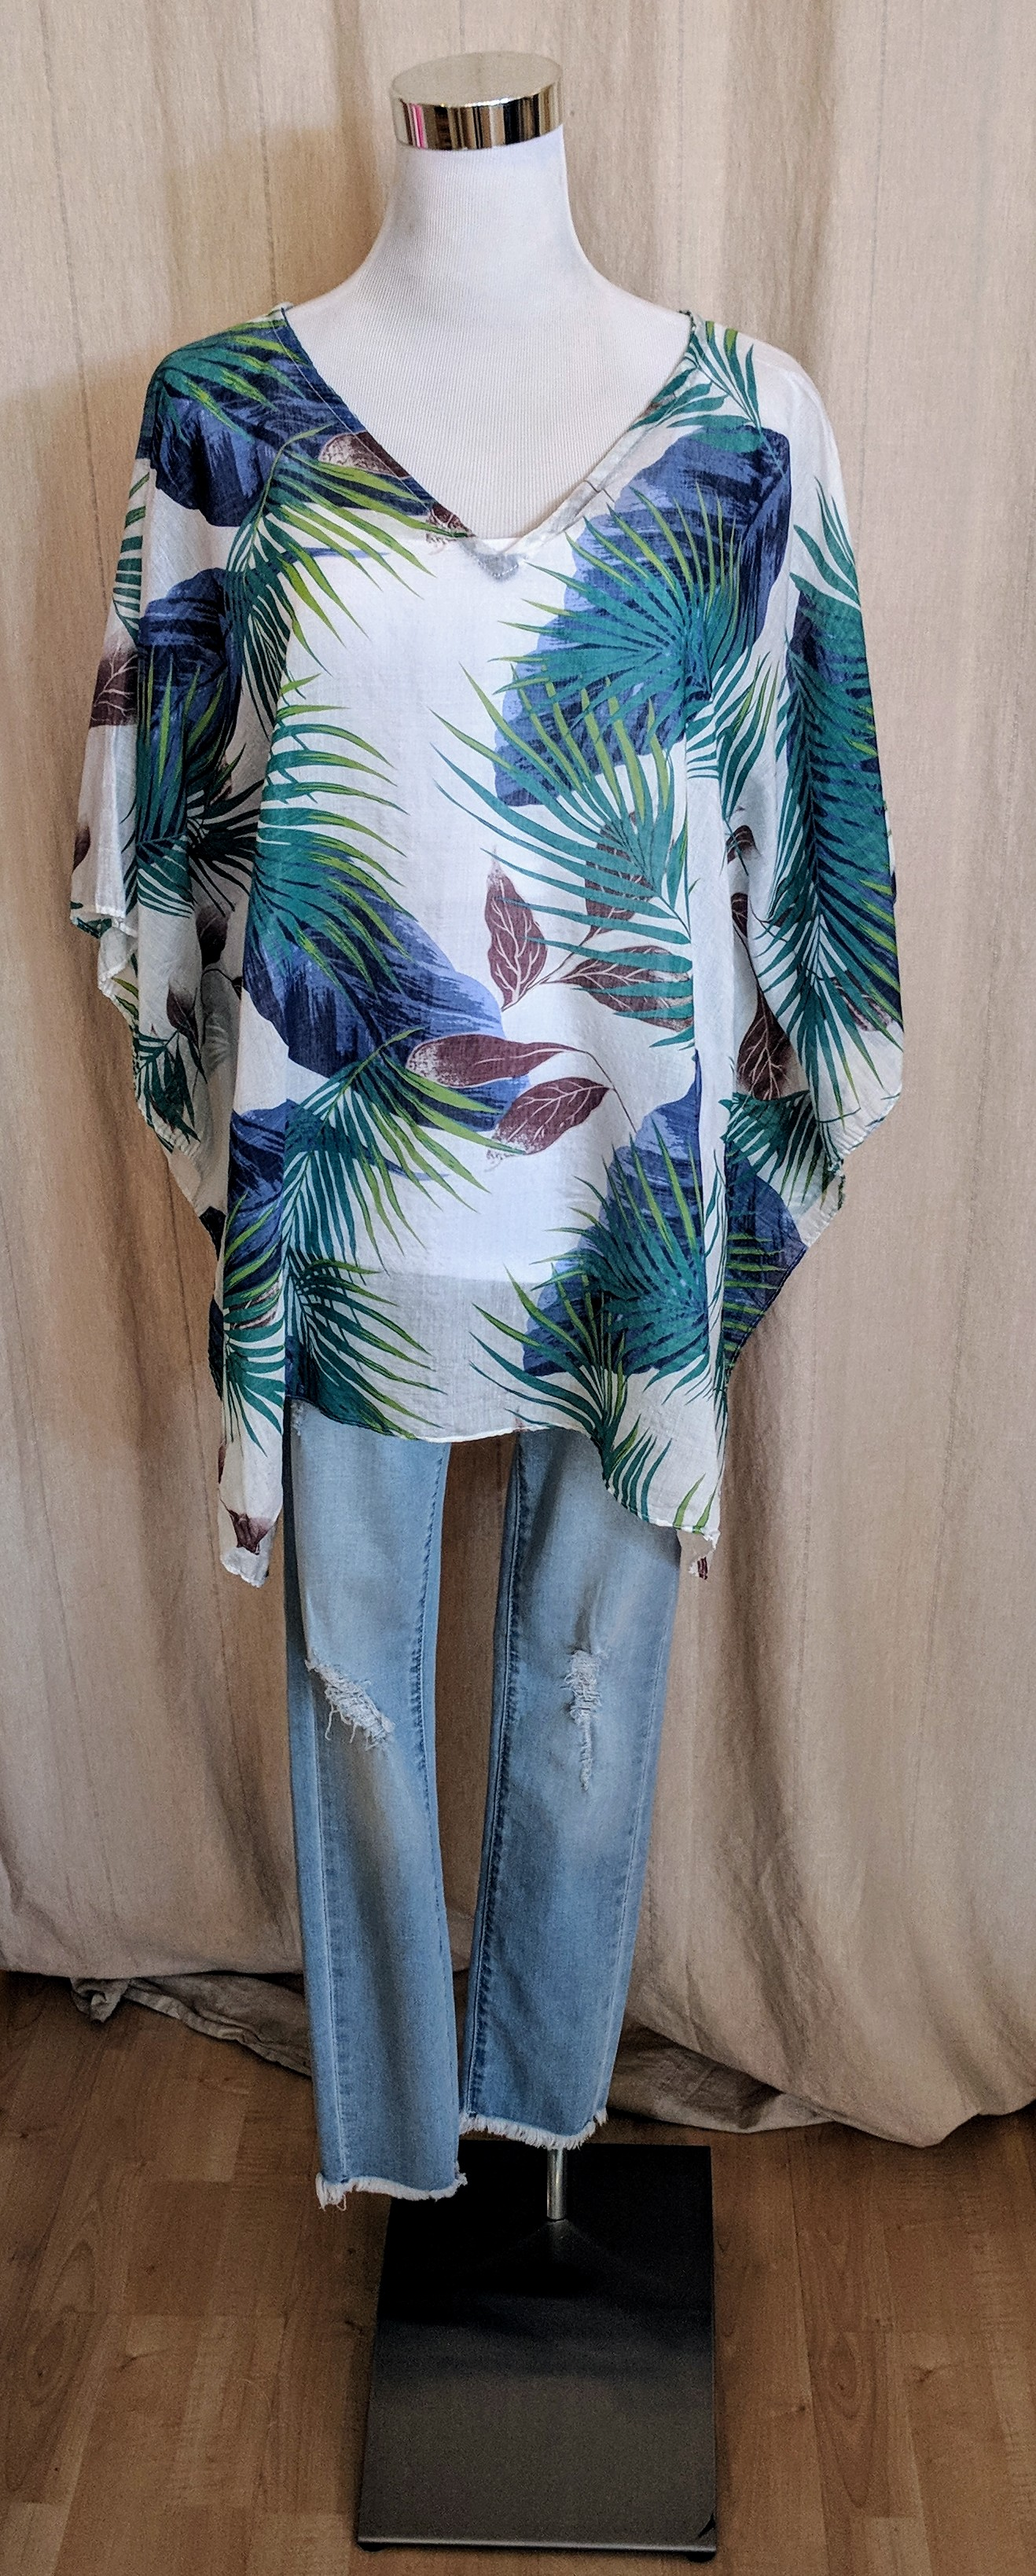 Blue tropical pattern cover.